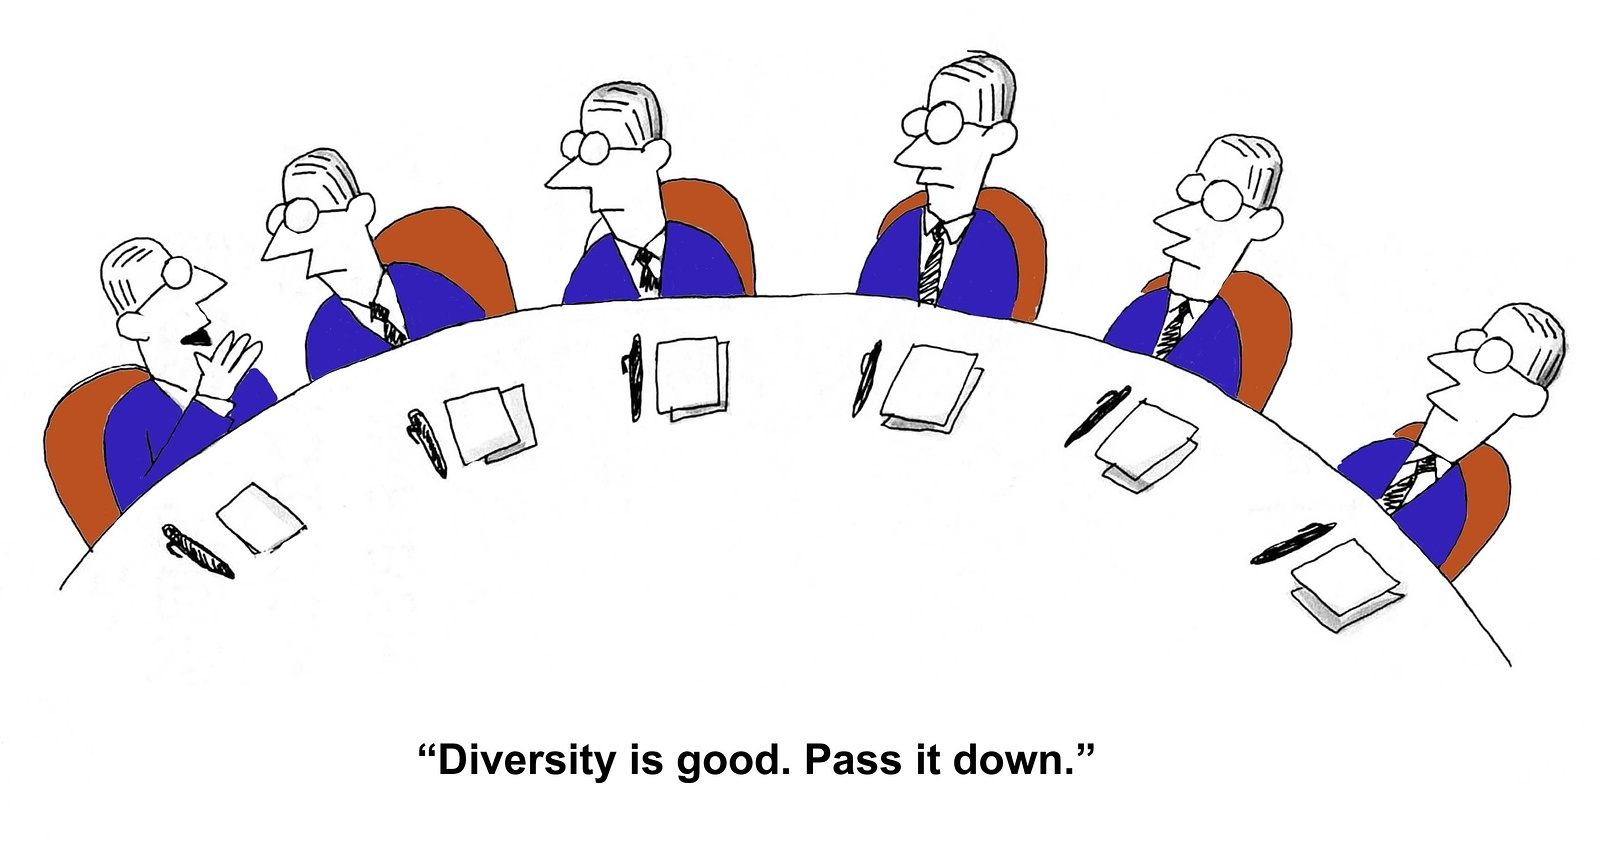 bigstock-Diversity-is-Good-81646265.jpg